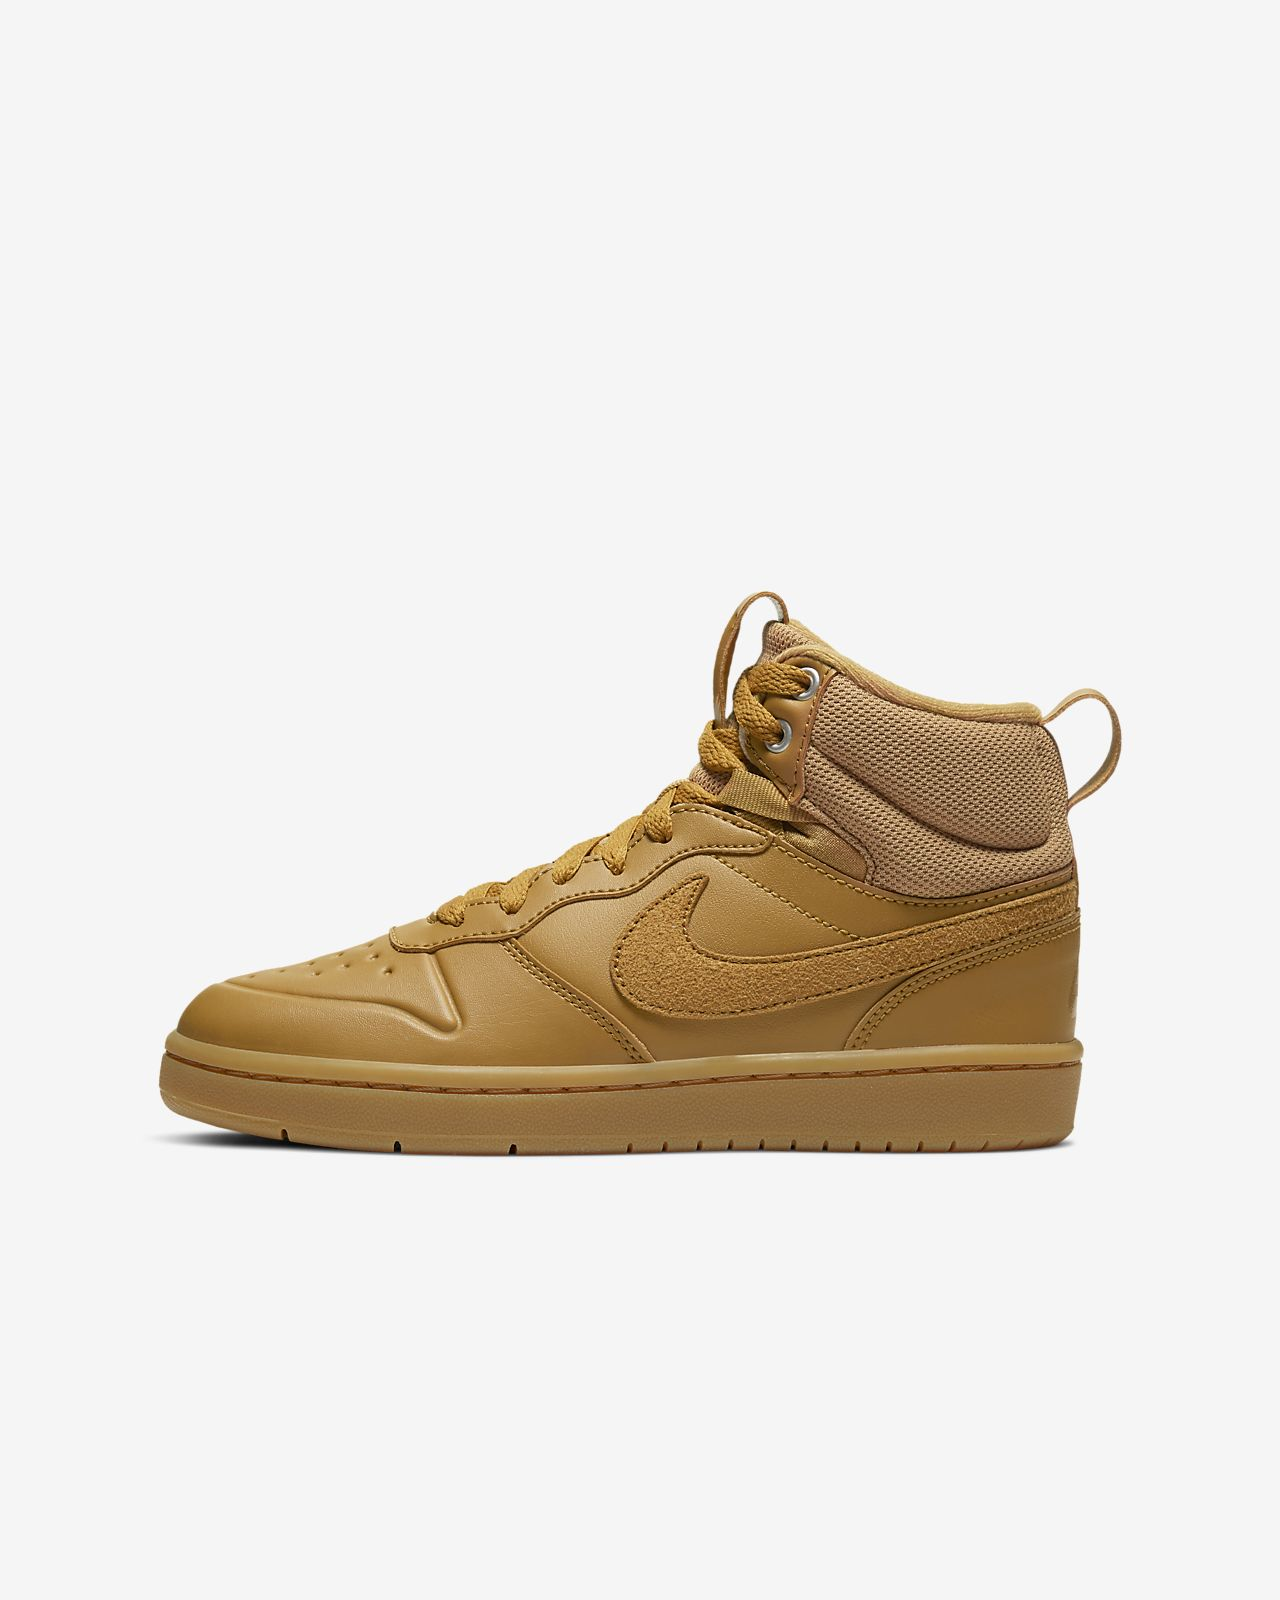 Nike Court Borough Mid 2 Boot (GS) 大童运动童鞋